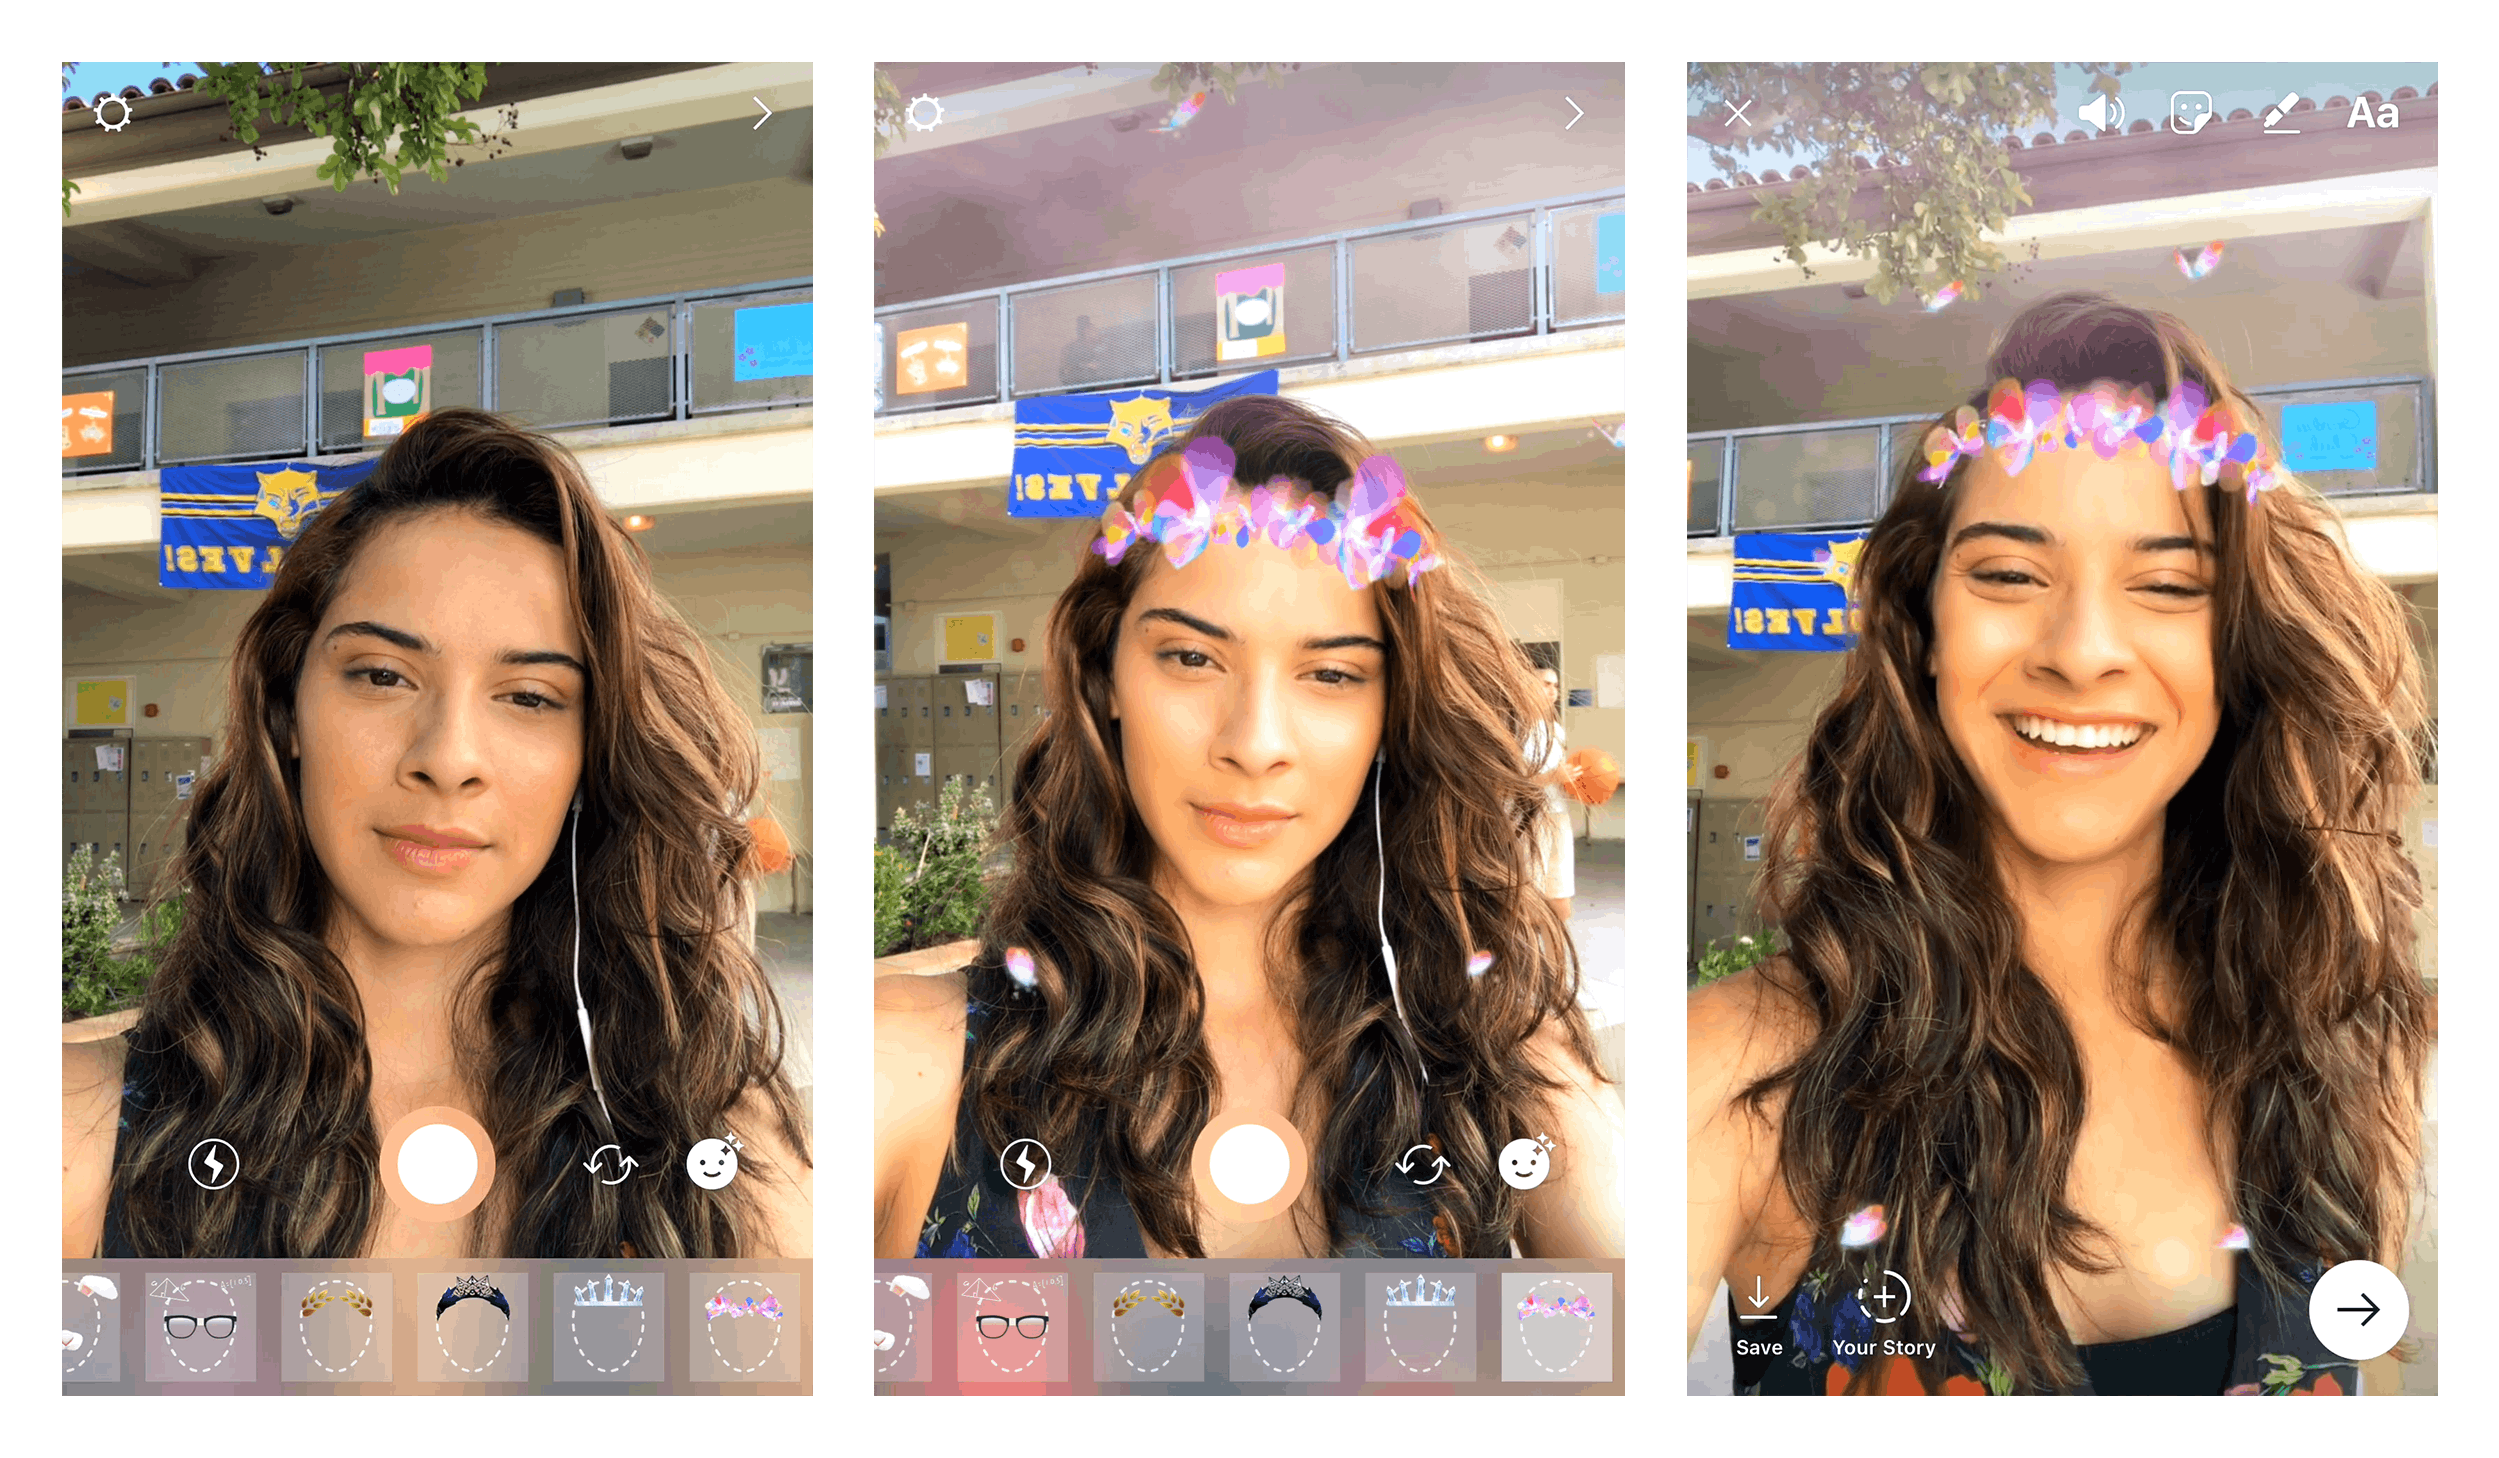 Instagram Adds Face Filters - Another Snapchat Feature